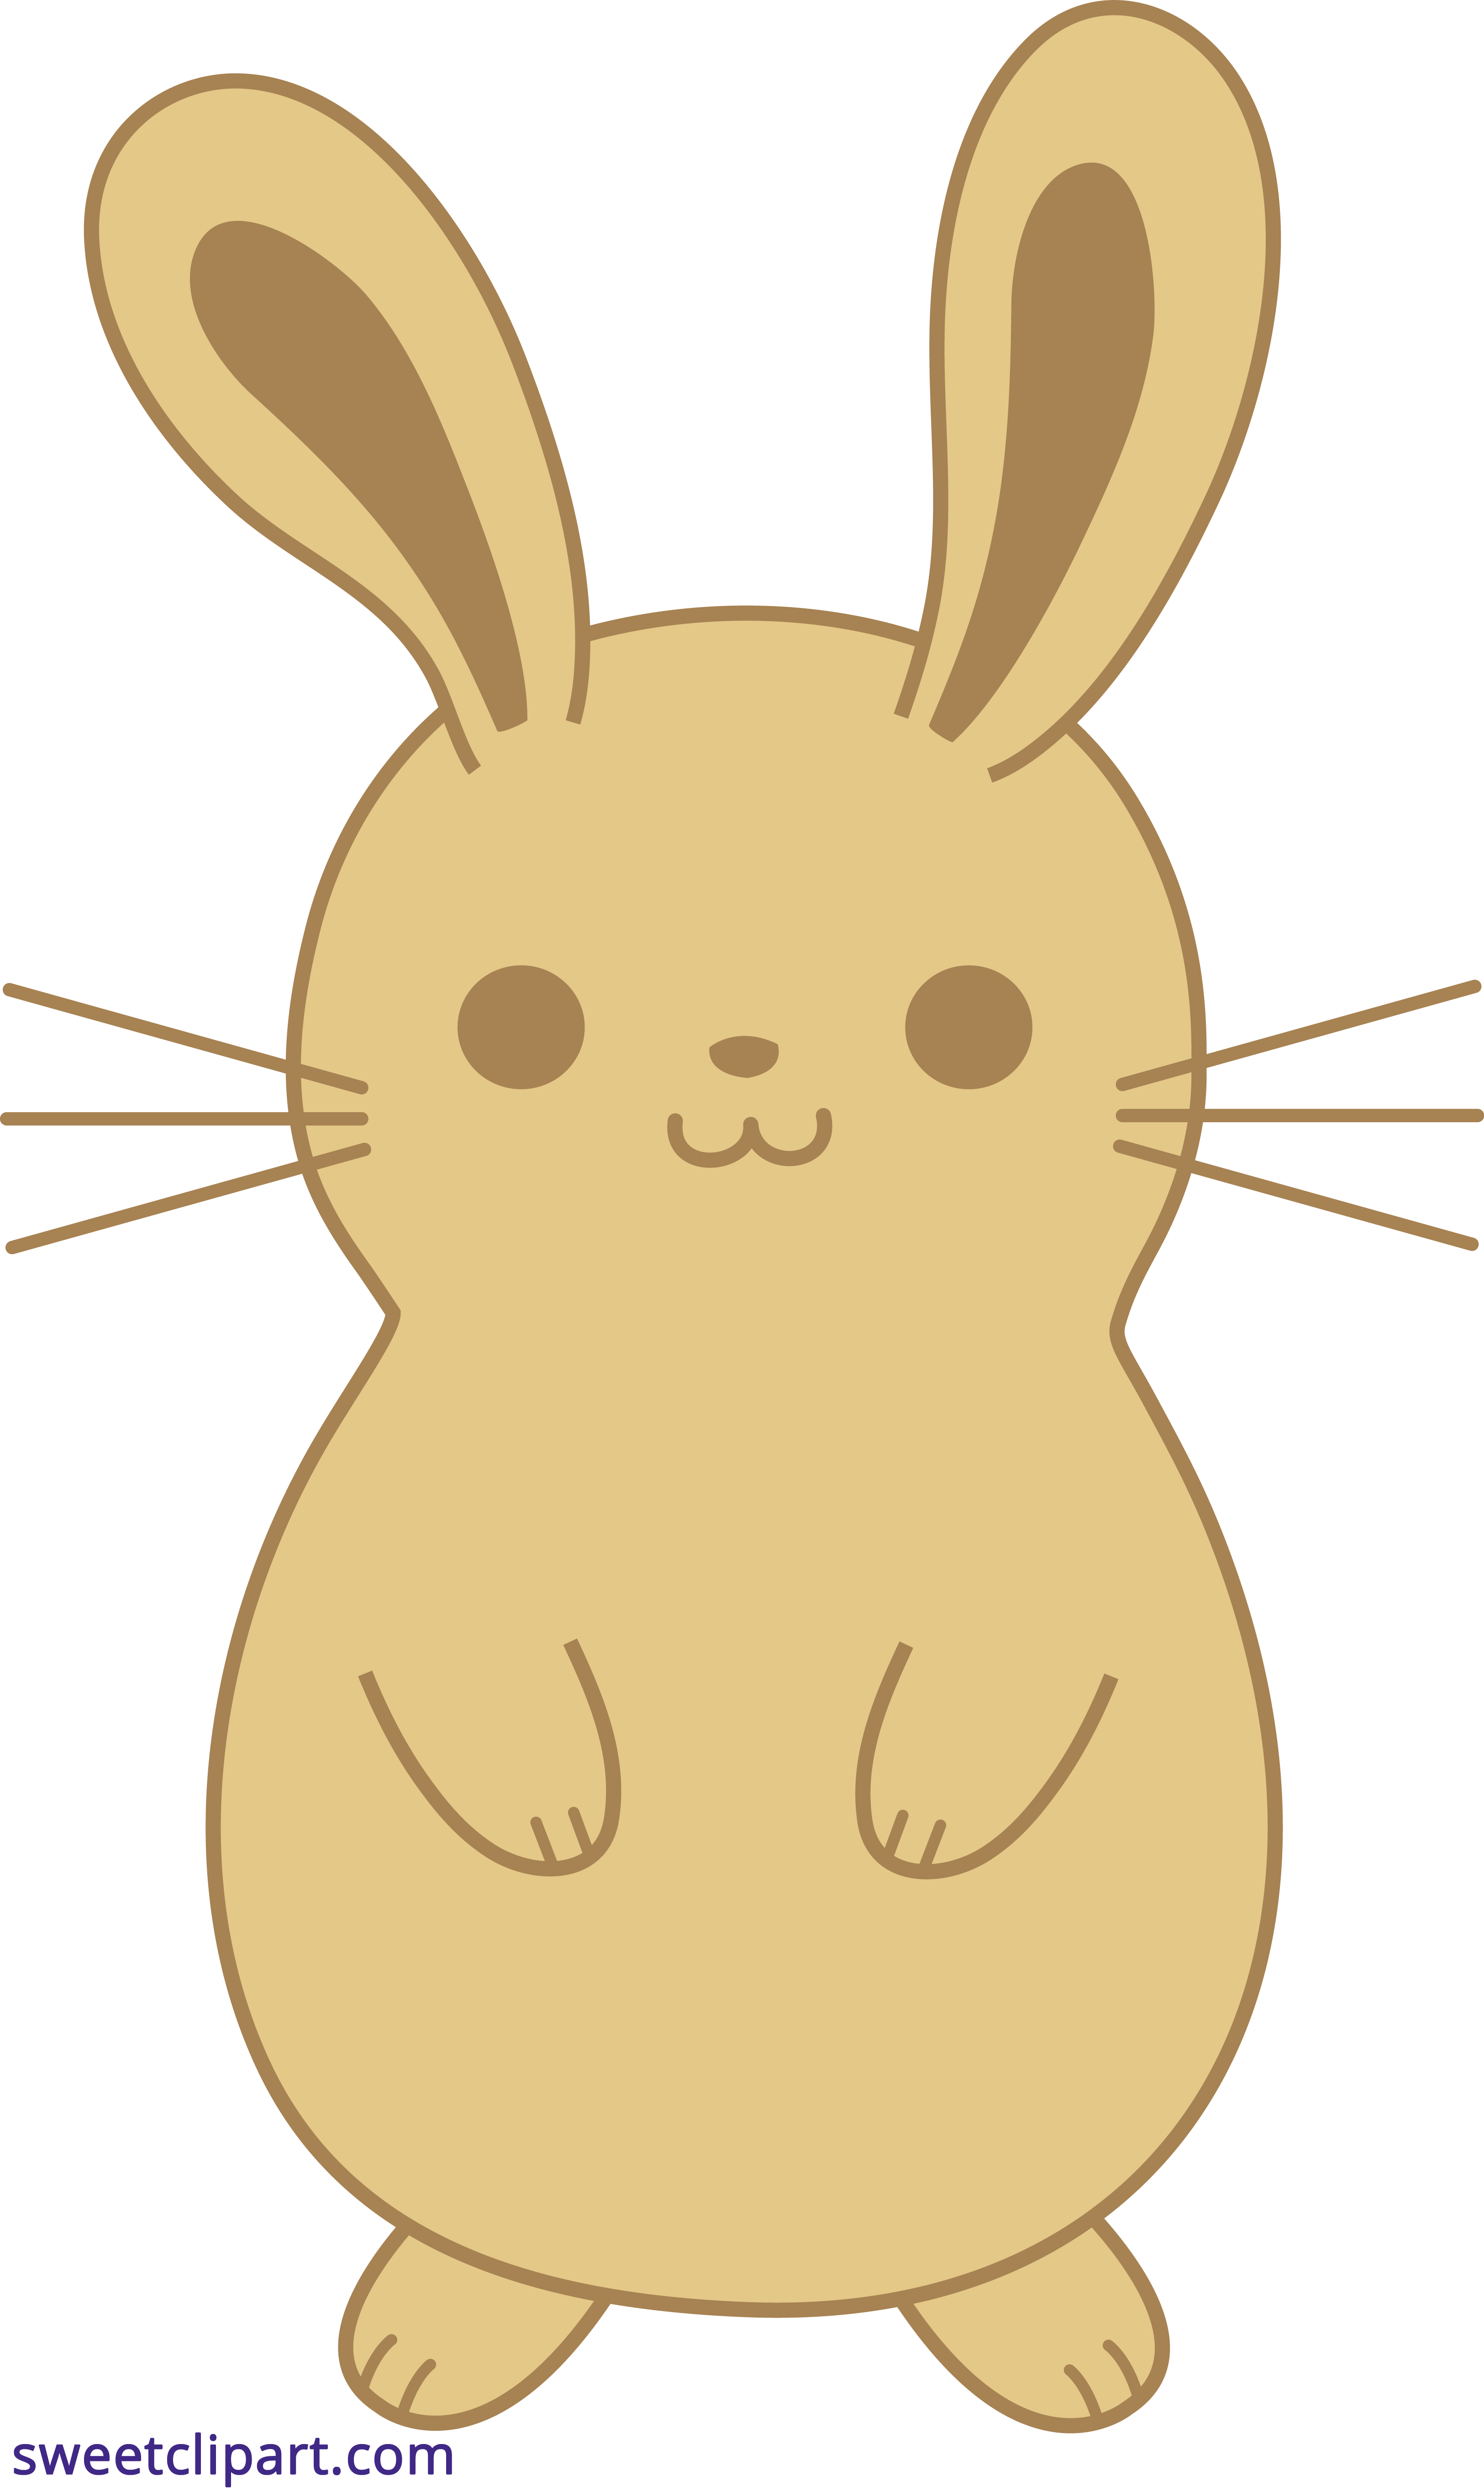 Bunny clipart cute bunny. Rabbit brown sweet clip